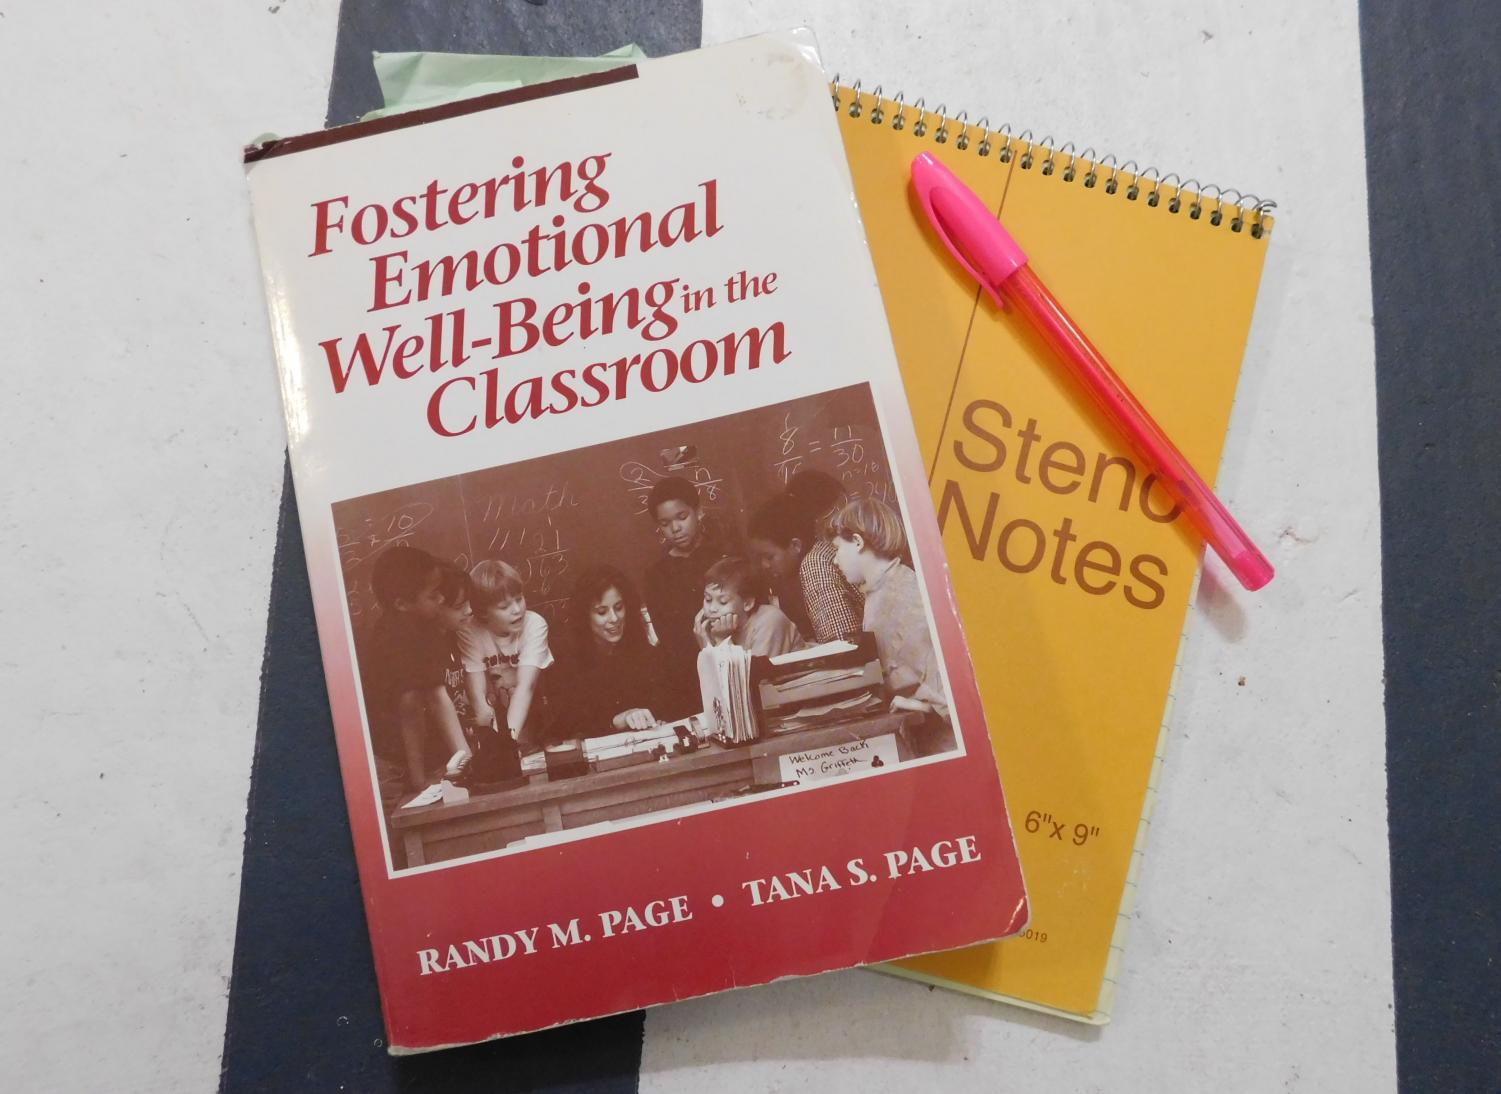 The+book+Fostering+Emotional+Well-Being+in+the+Classroom+contains+information+that+describes+a+positive+learning+environment.